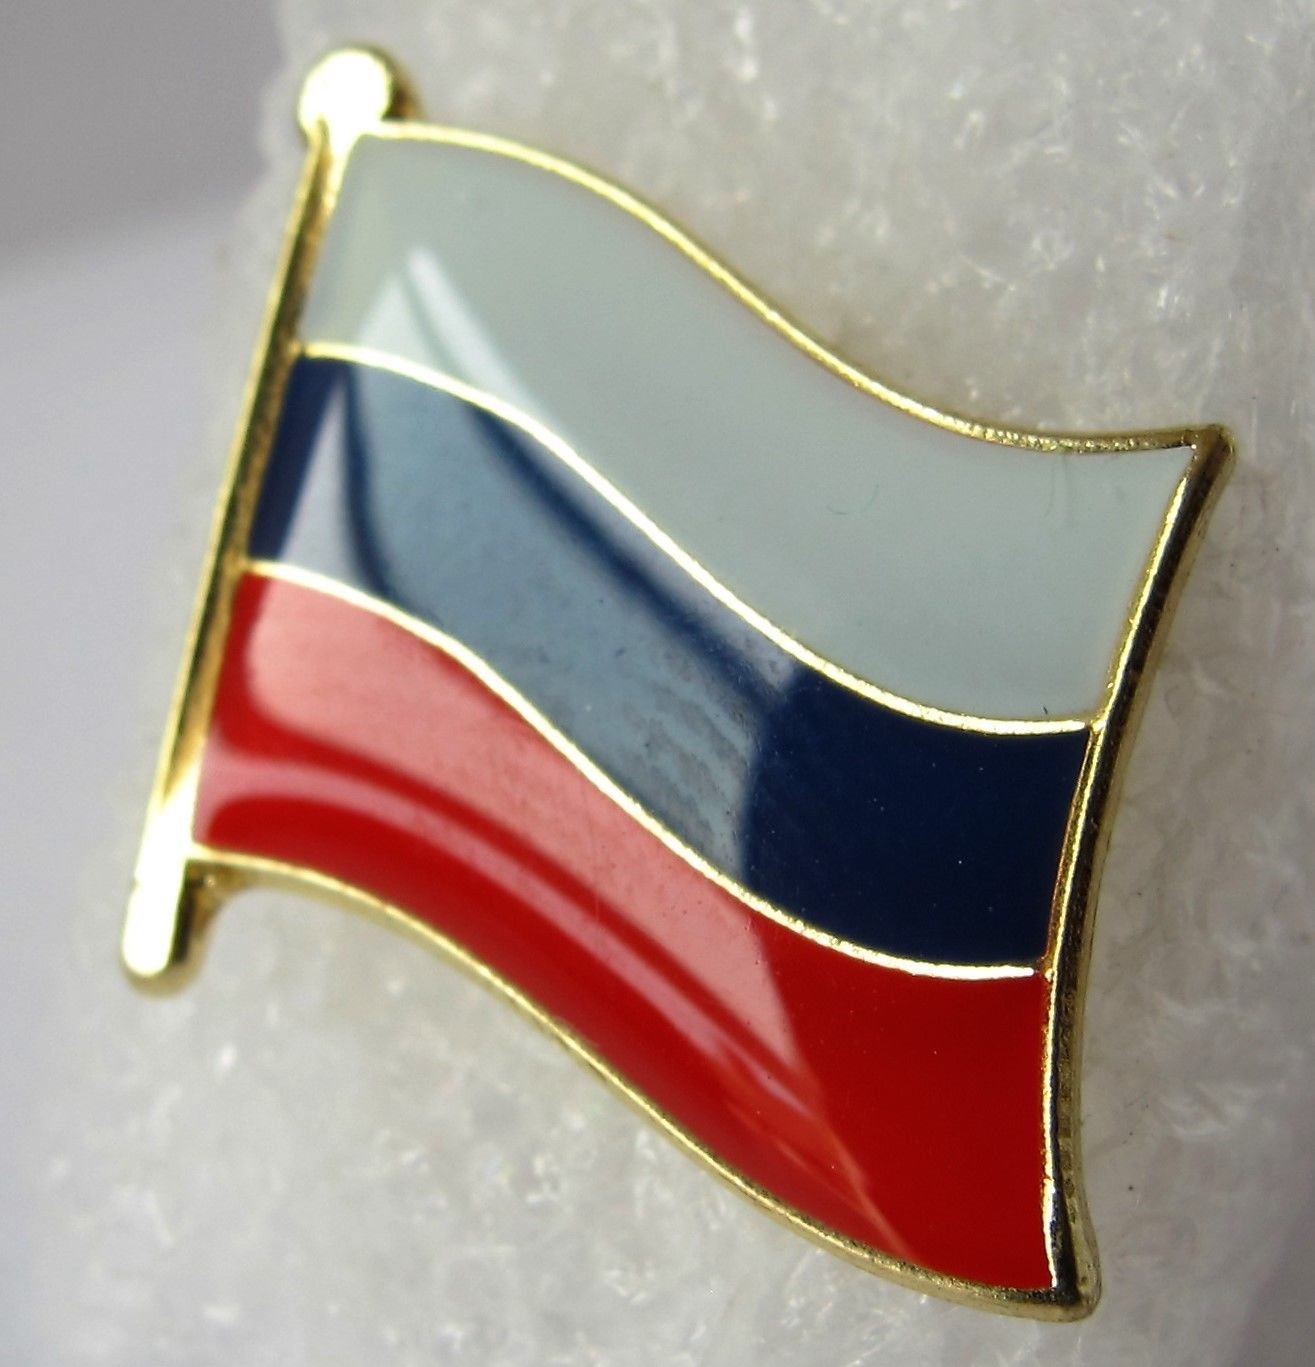 Details about Russia Russian Россия Русский Flag Gloss Enamel Badge British Badges